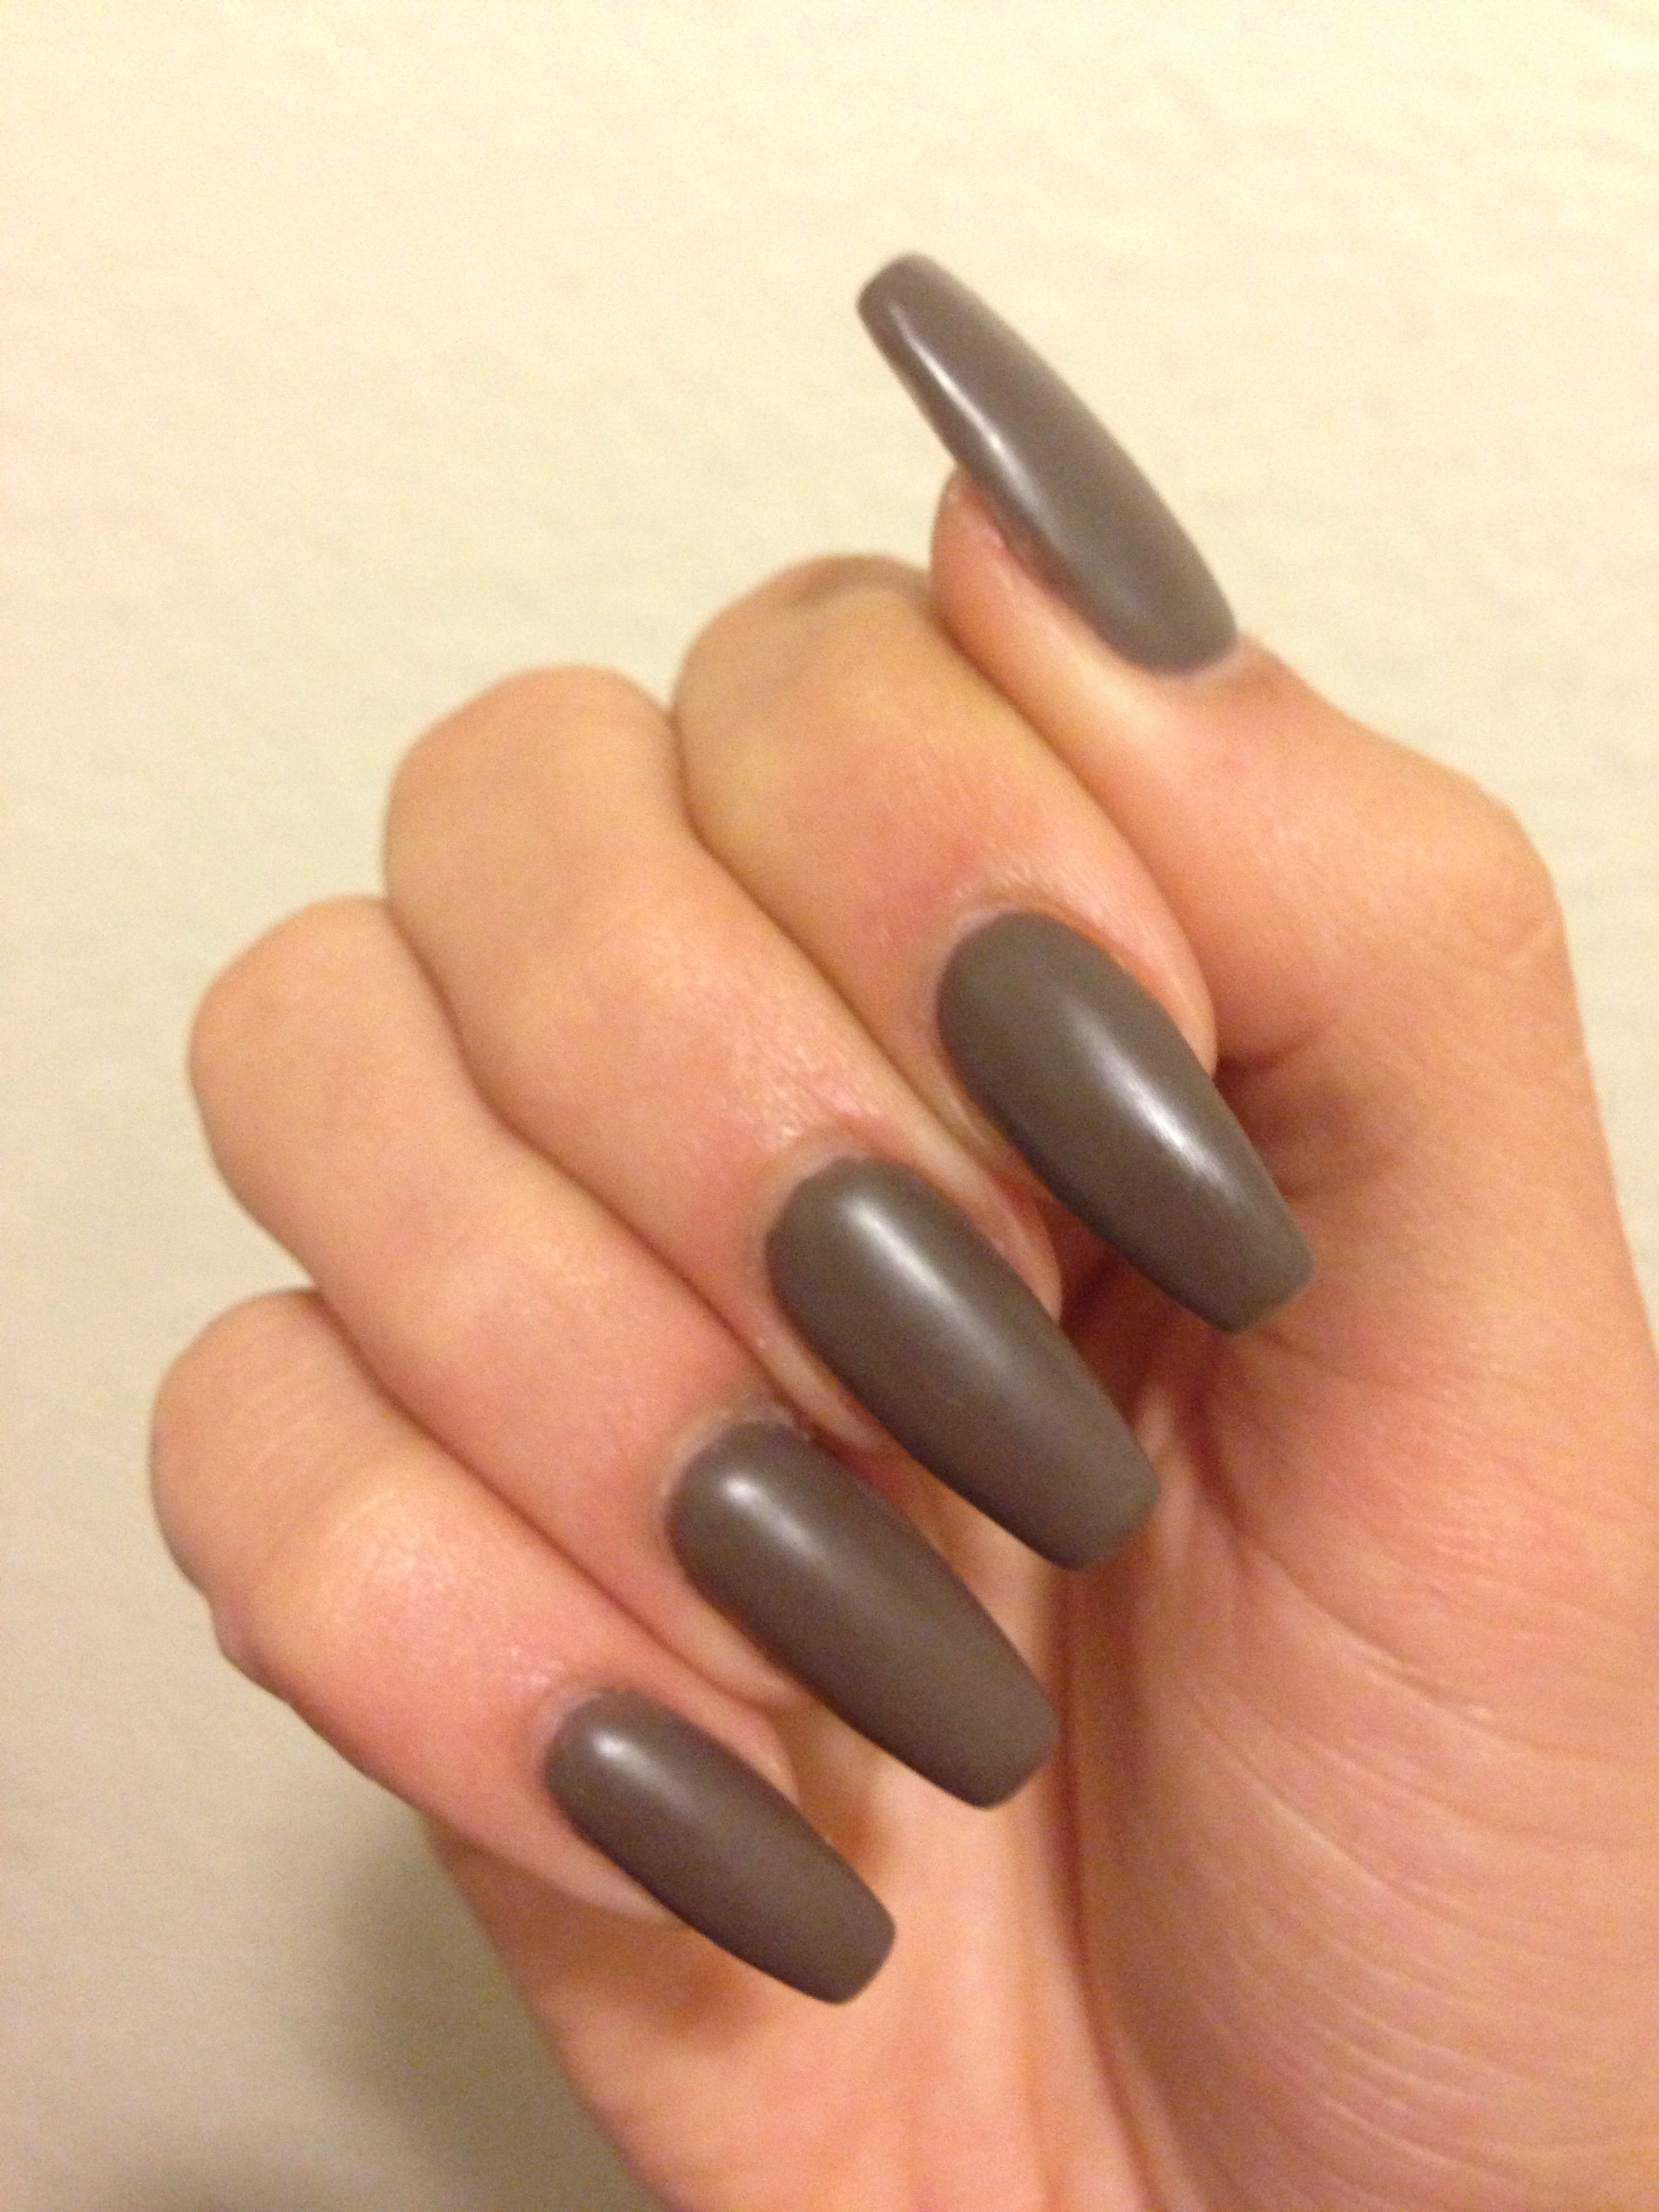 Dark brown/ gray matte nails | Nails | Pinterest | Grey matte nails ...